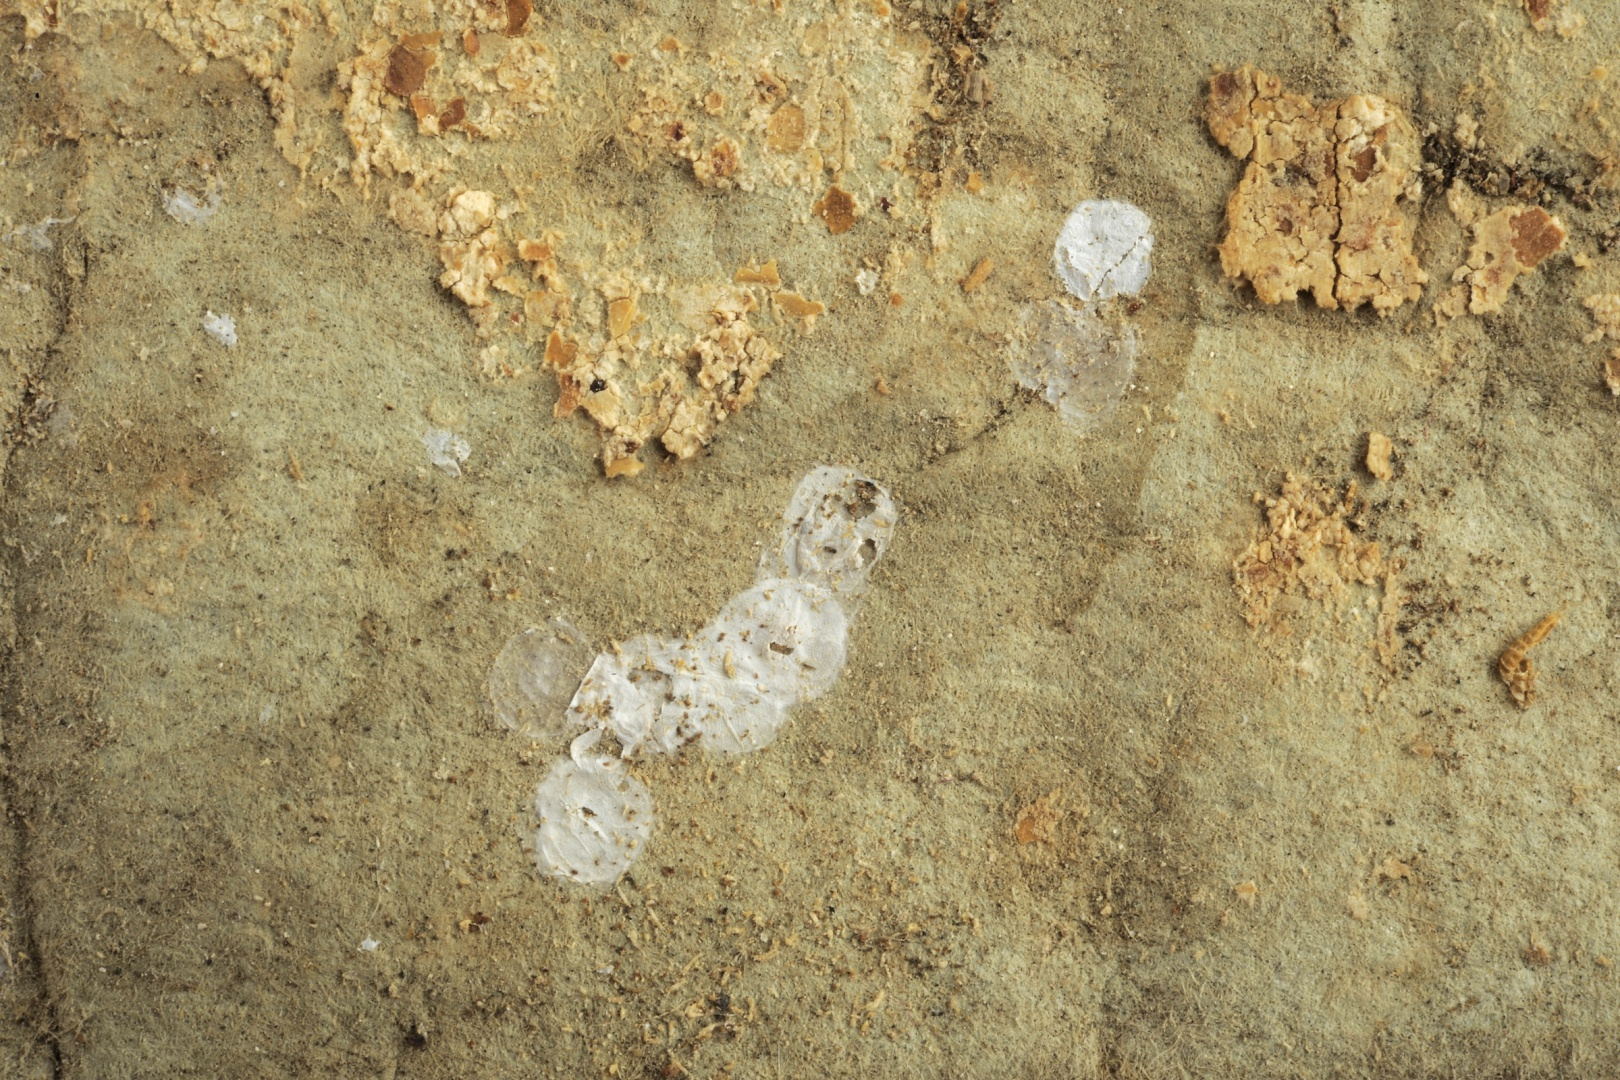 ill 6. This is the reverse side of the wallpaper with splotches of glue and dirt, insect- and moisture-damage, tears and material losses.